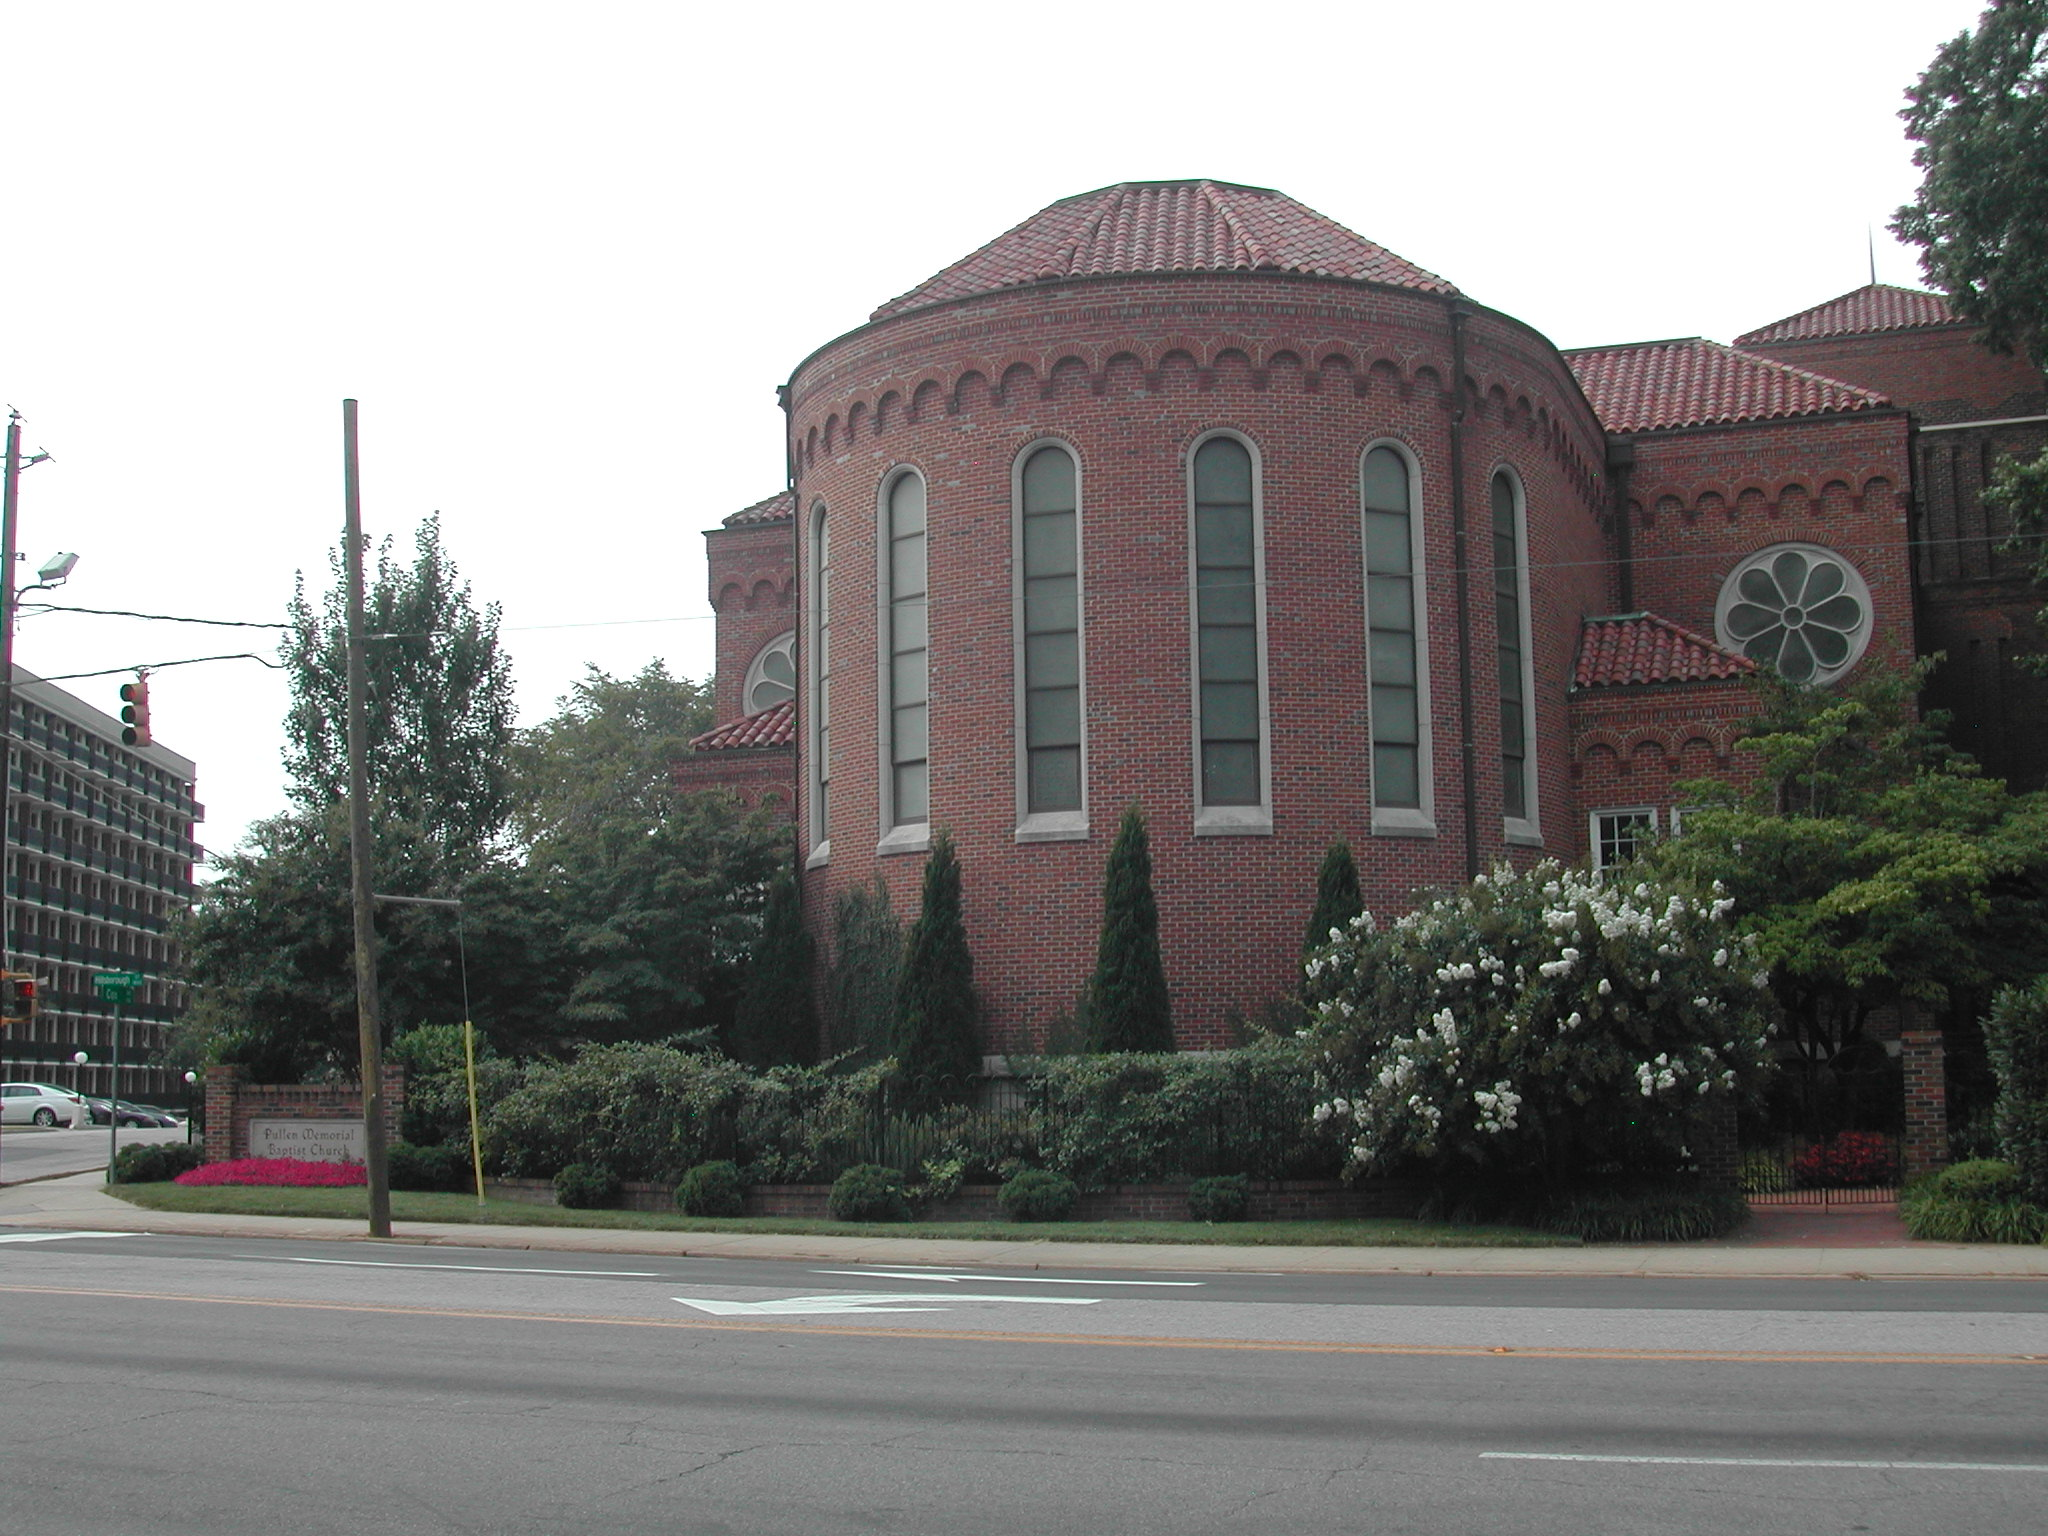 Pullen Baptist Church